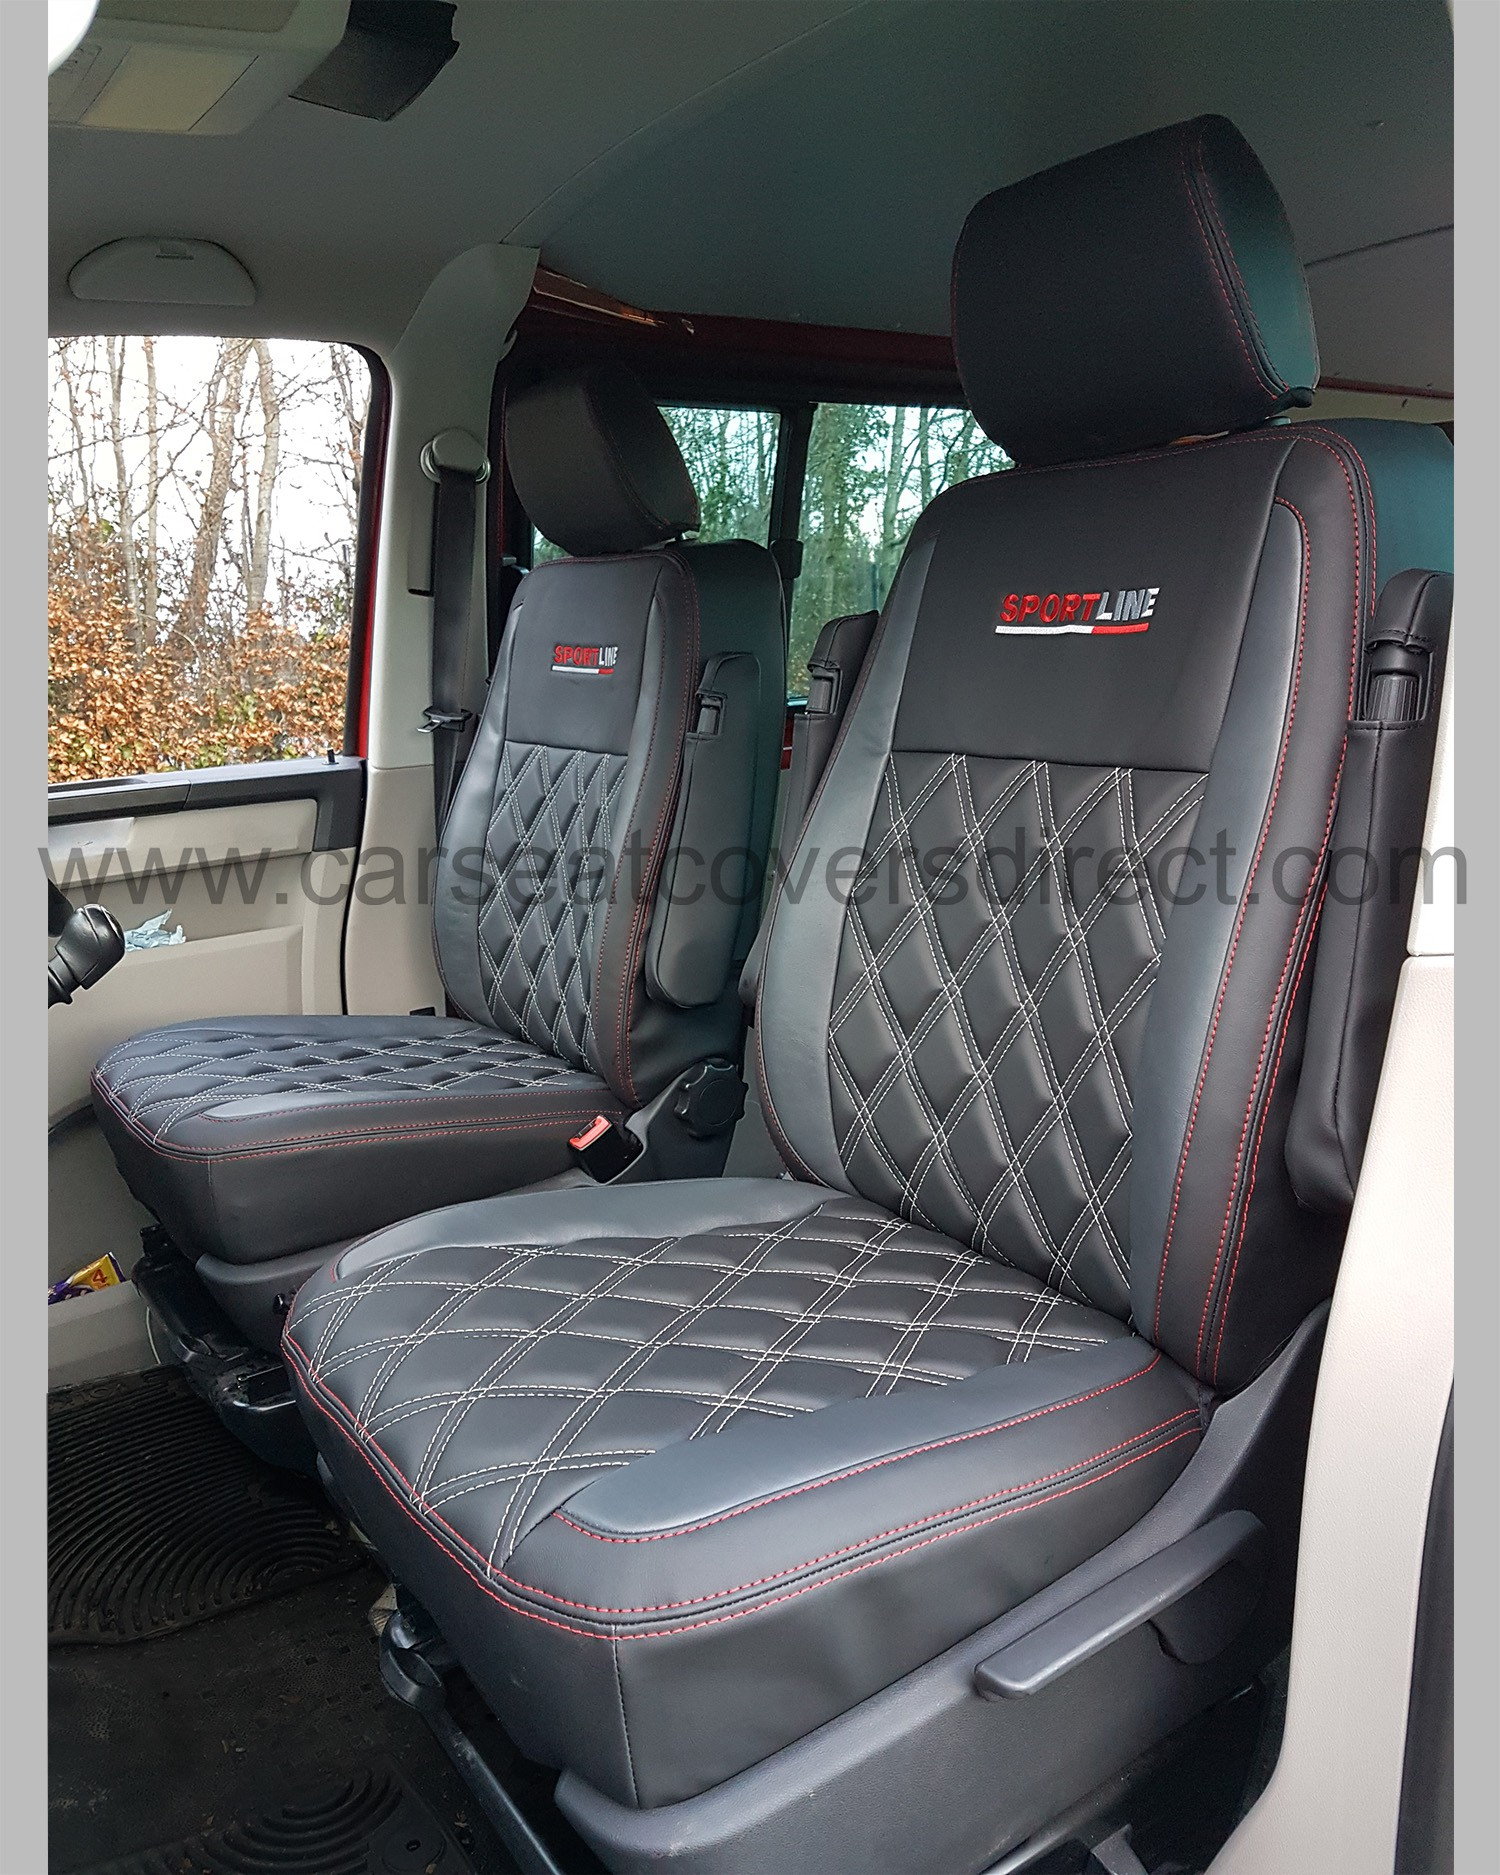 vw transporter t5 kombi seat covers charcoal grey with diamonds crew cab car seat covers. Black Bedroom Furniture Sets. Home Design Ideas